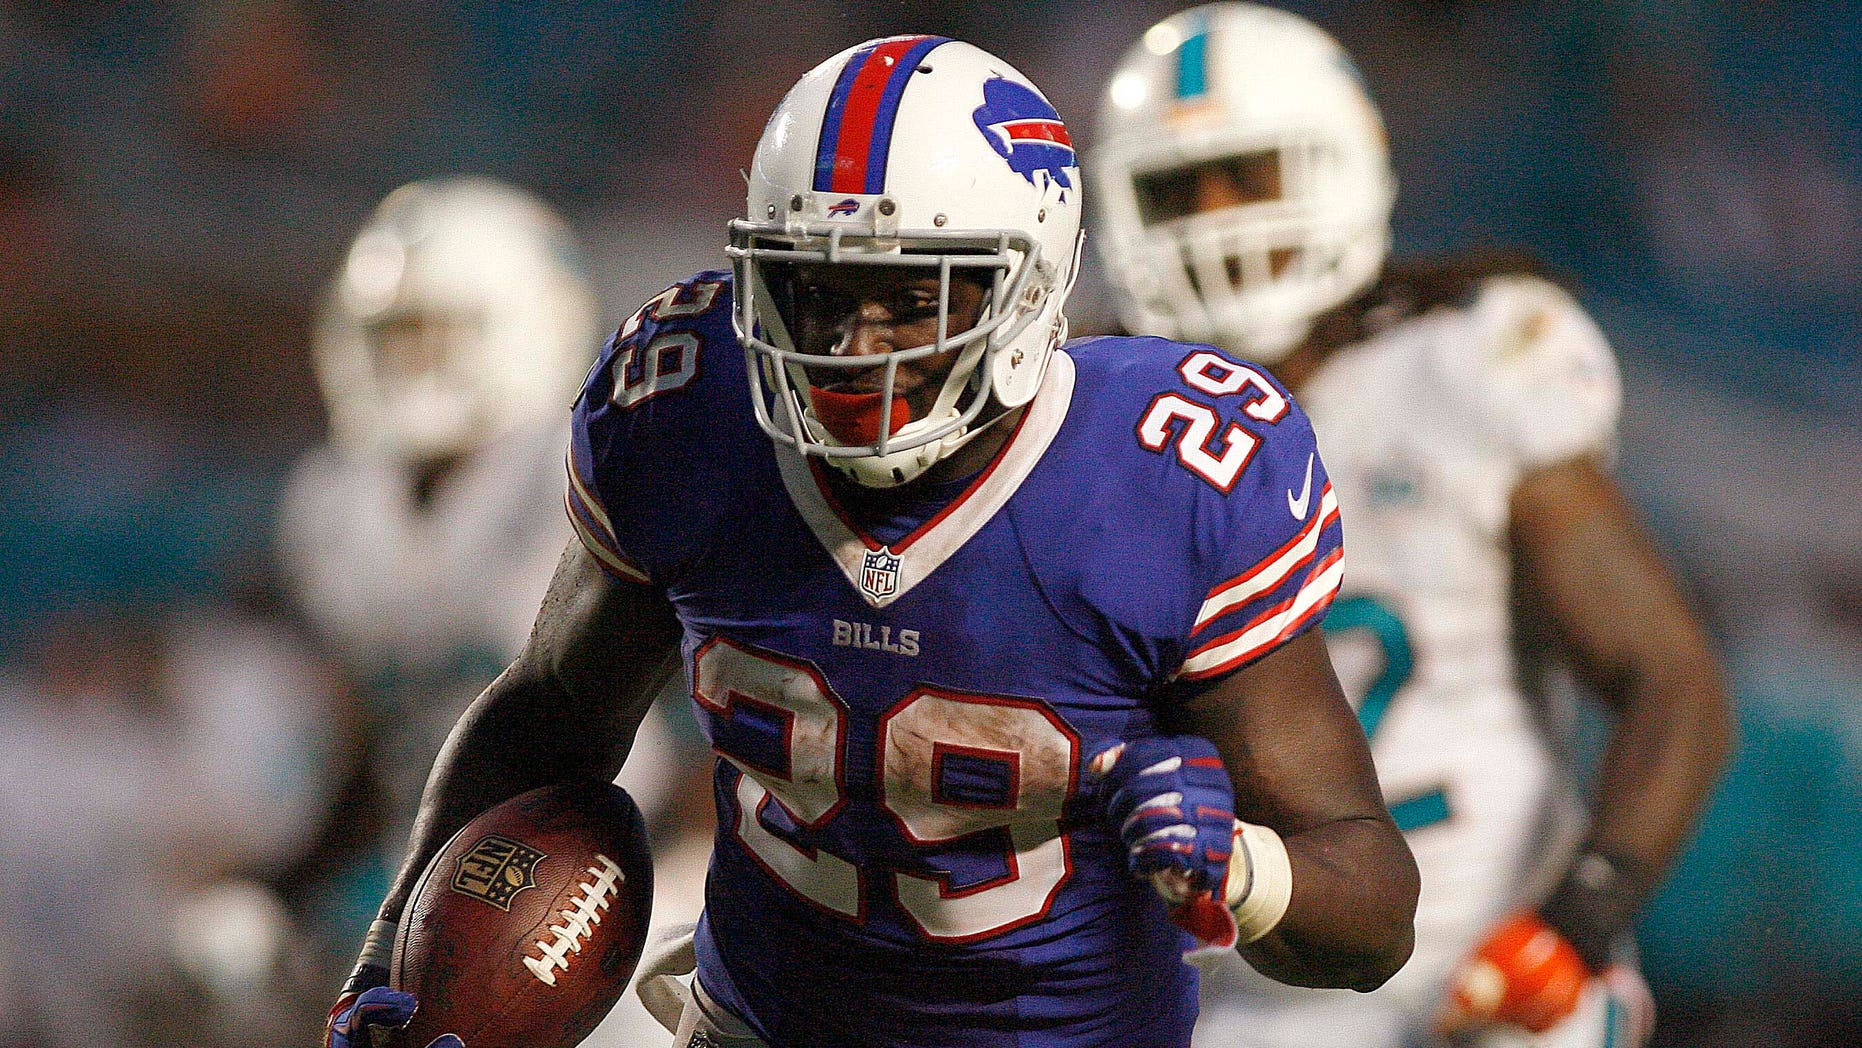 Sep 27, 2015; Miami Gardens, FL, USA; Buffalo Bills running back Karlos Williams (29) carries the ball in the second half against the Miami Dolphins at Sun Life Stadium.